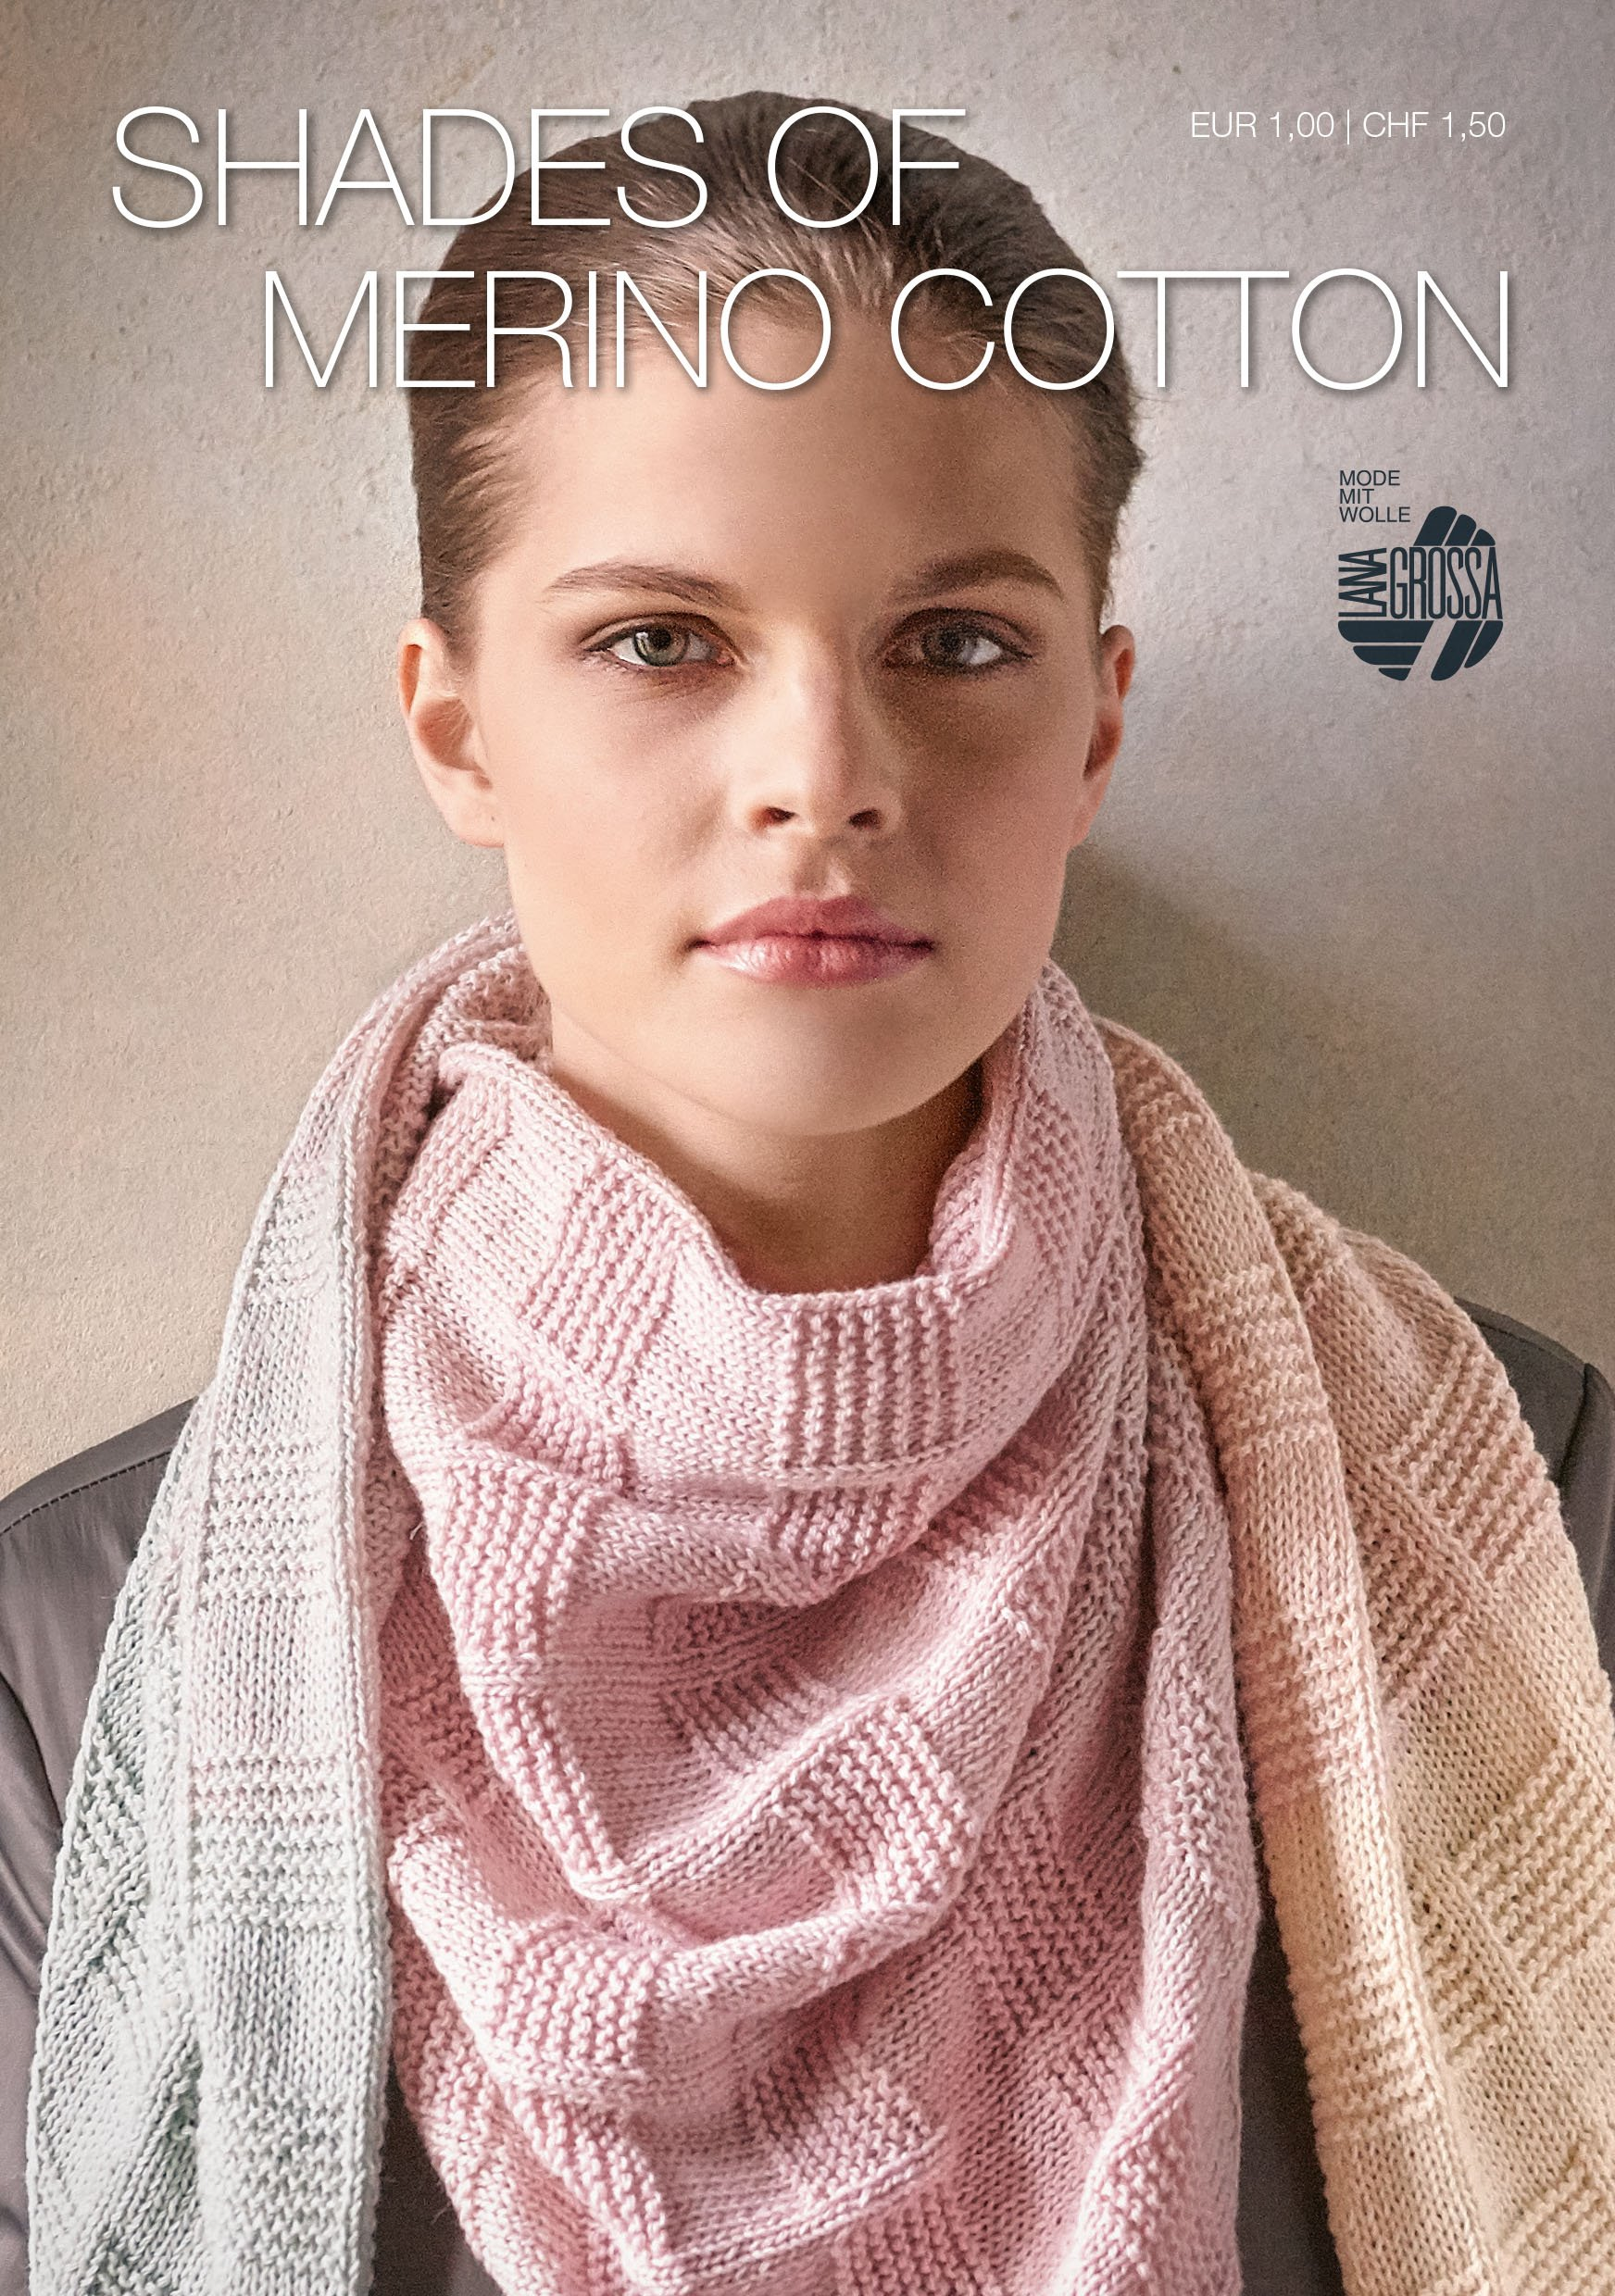 Lana Grossa SHADES OF MERINO COTTON Flyer